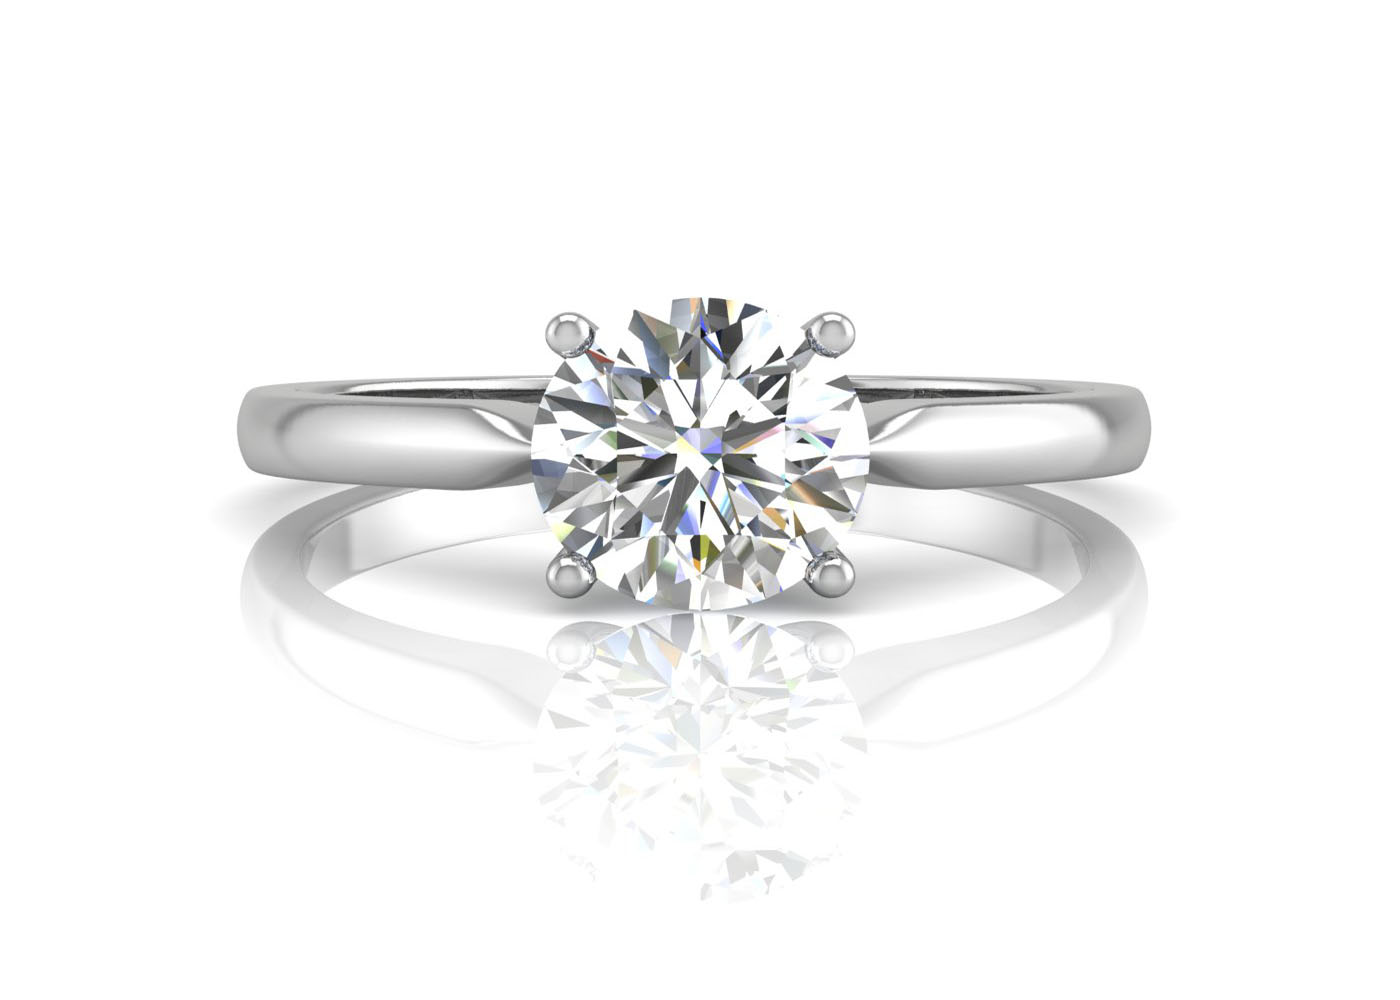 18ct White Gold D Flawless Diamond Enagagement Ring 0.50 Carats - Image 3 of 4